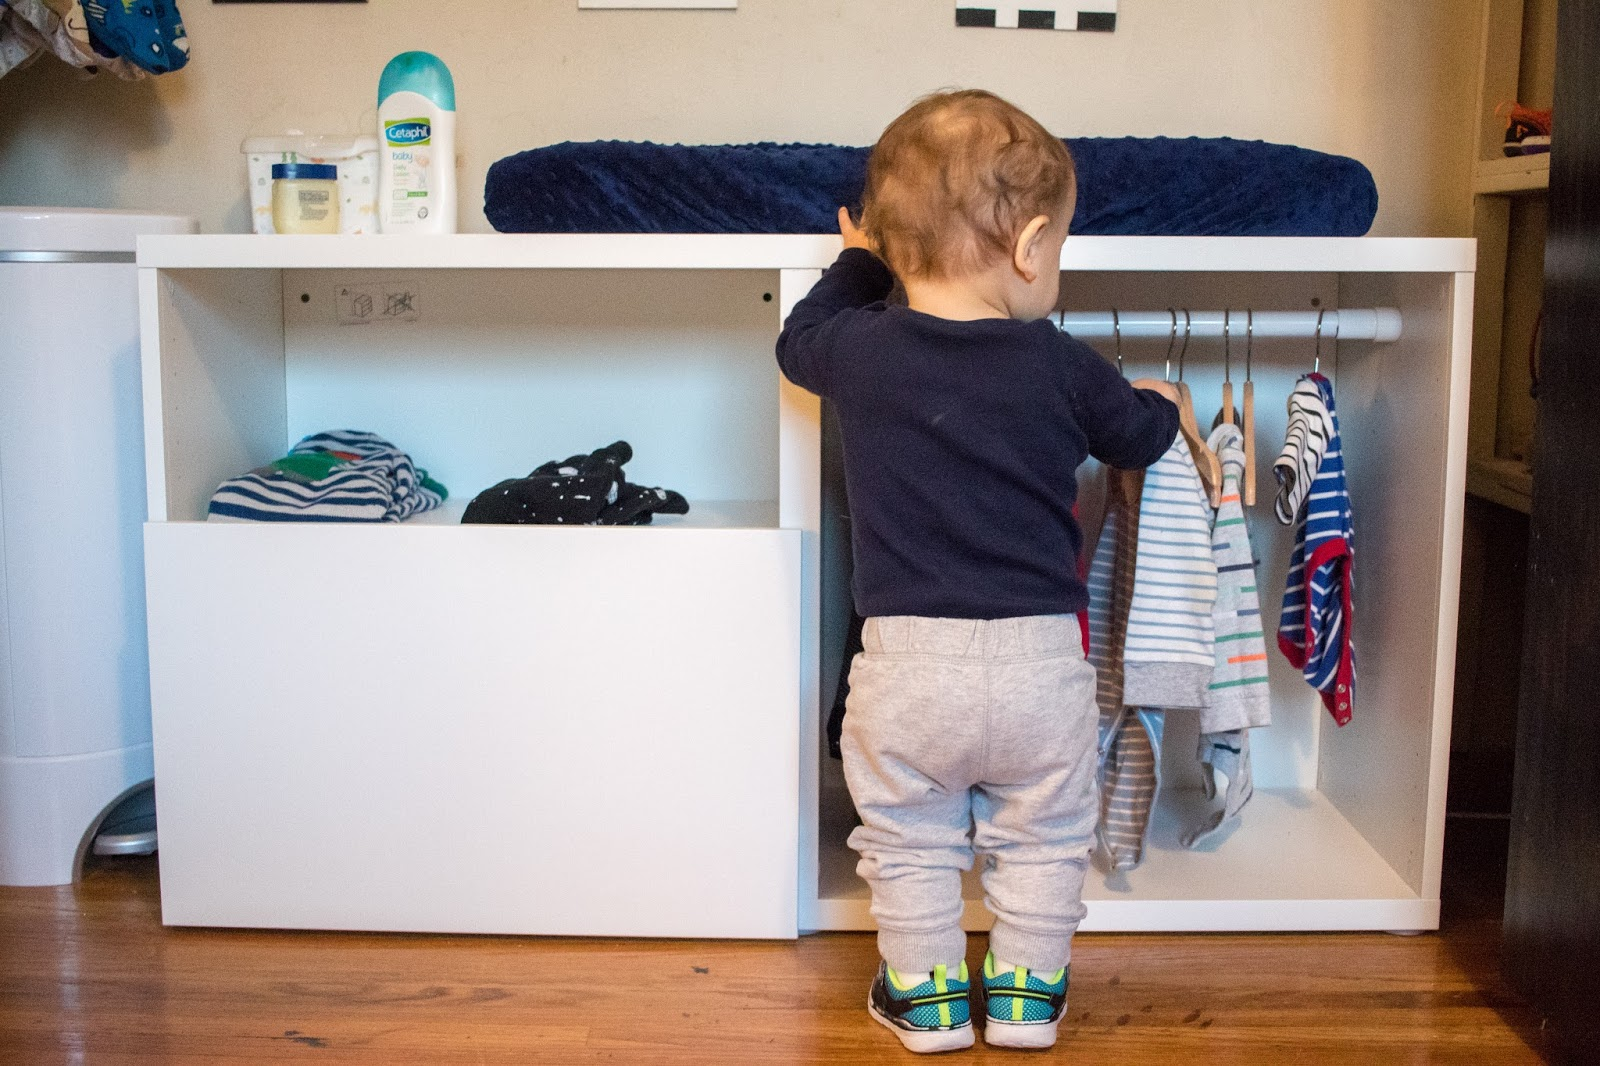 A DIY Montessori toddler wardrobe made with IKEA BESTA shelving